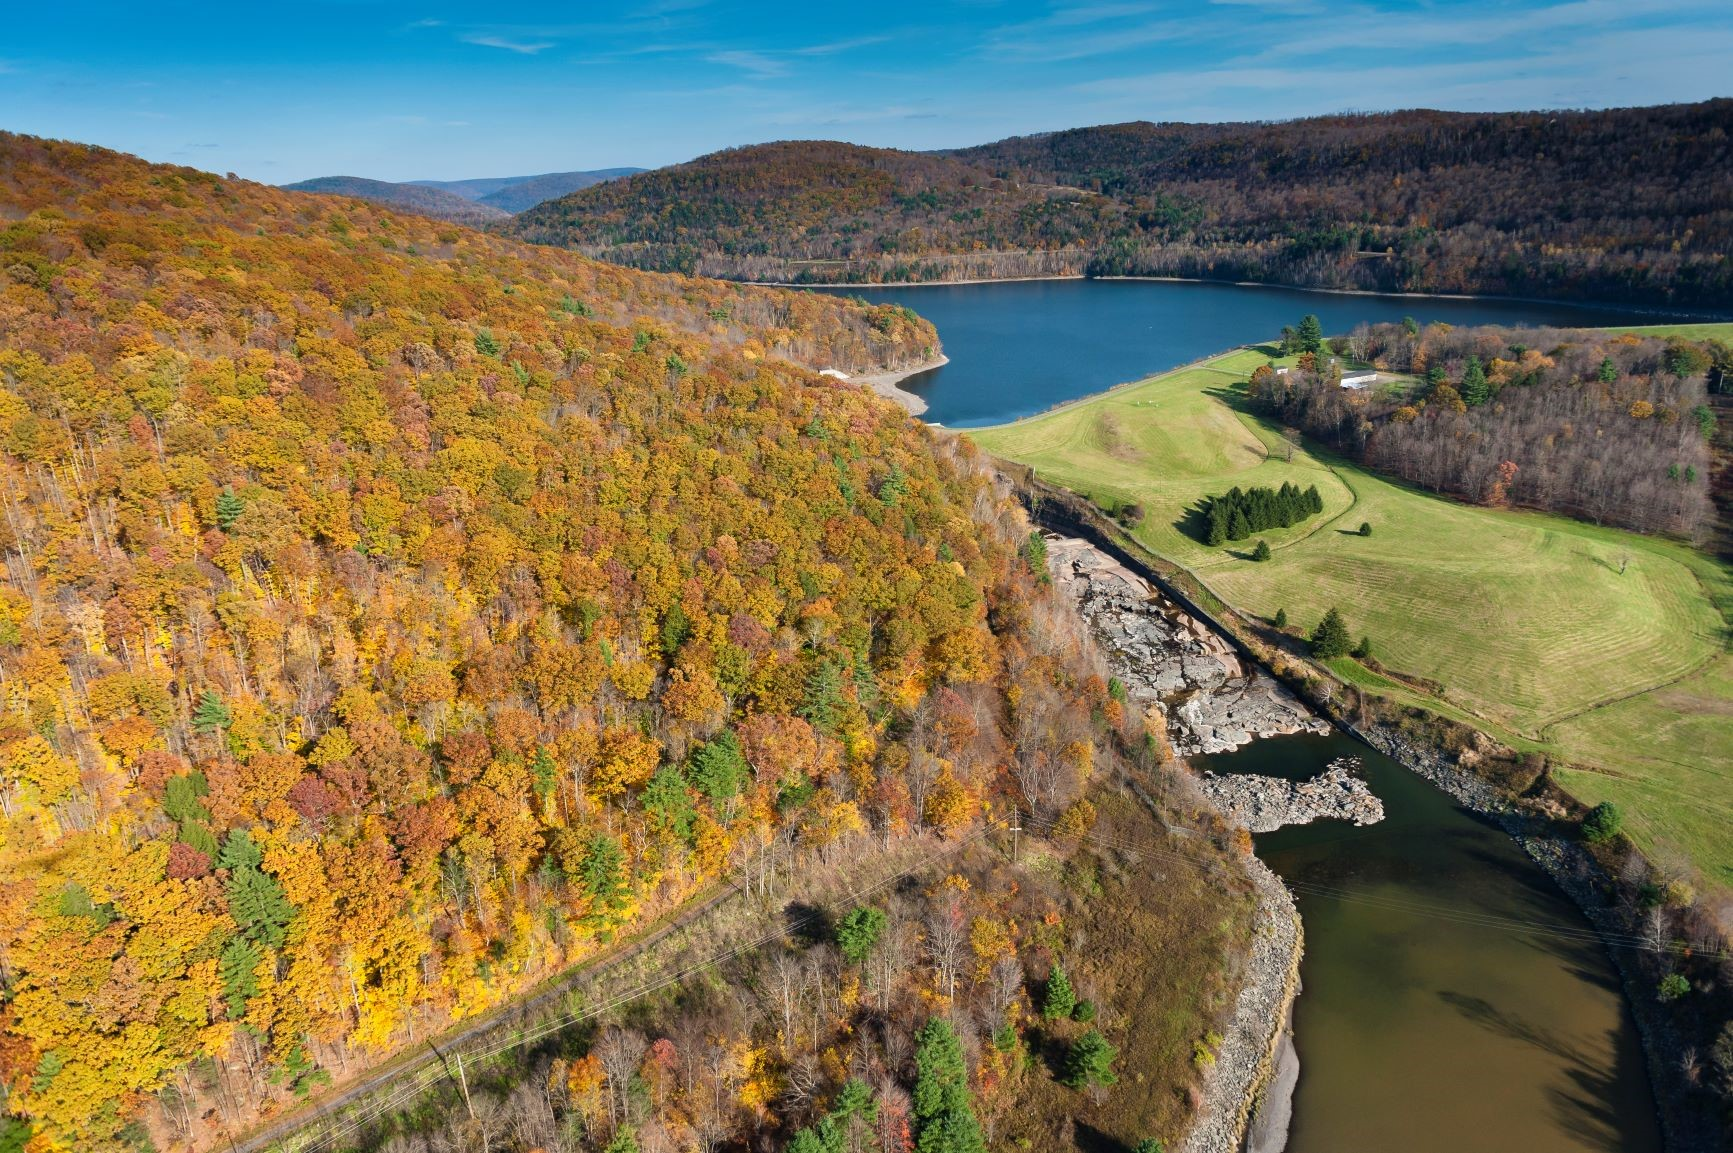 FUDR | Friends of the Upper Delaware River